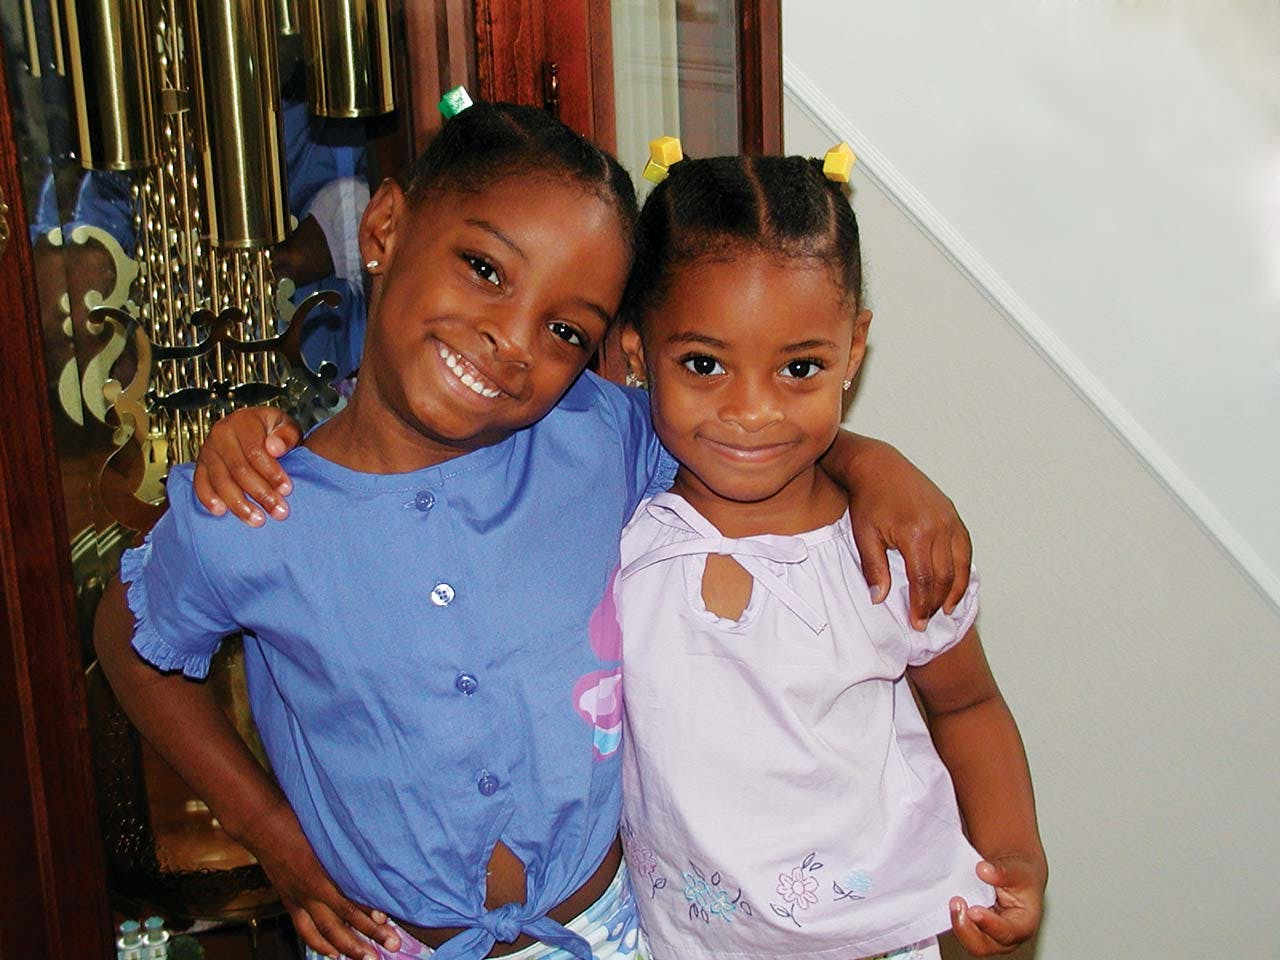 Biles at age six with her younger sister, Adria.